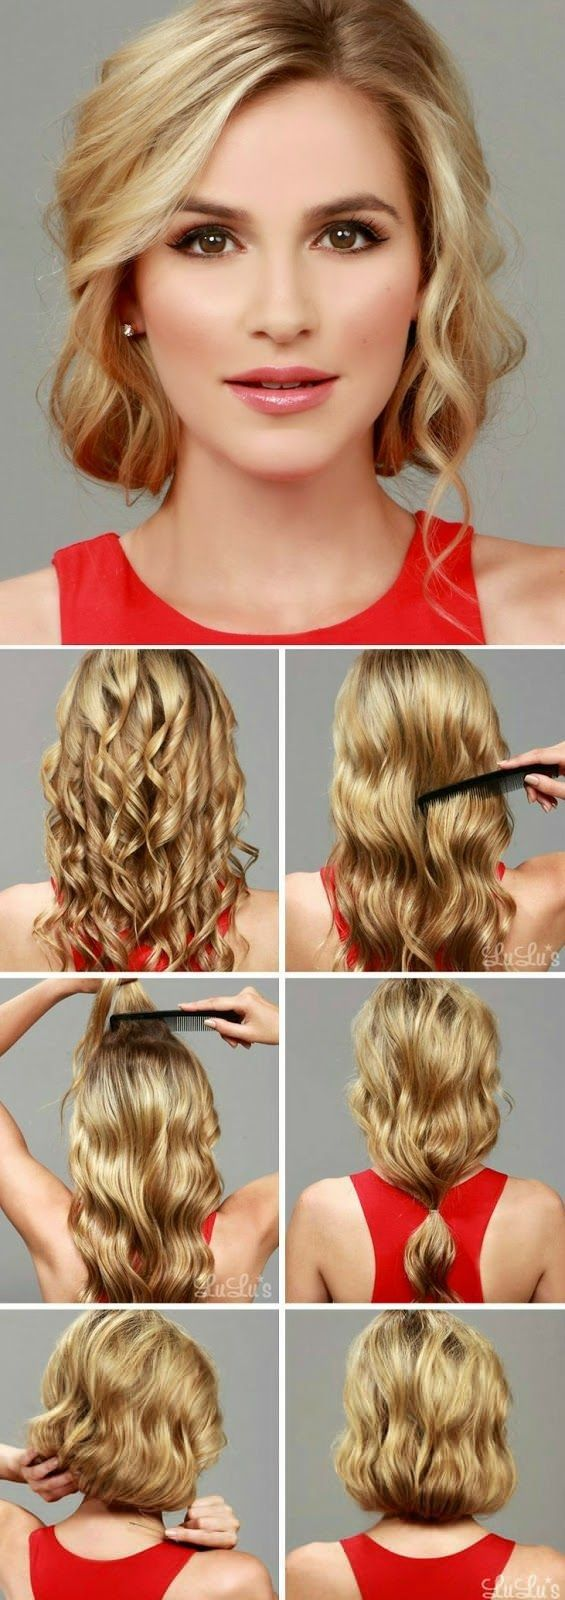 1000 Ideas About Coiffure Ete On Pinterest La Coiffure Les